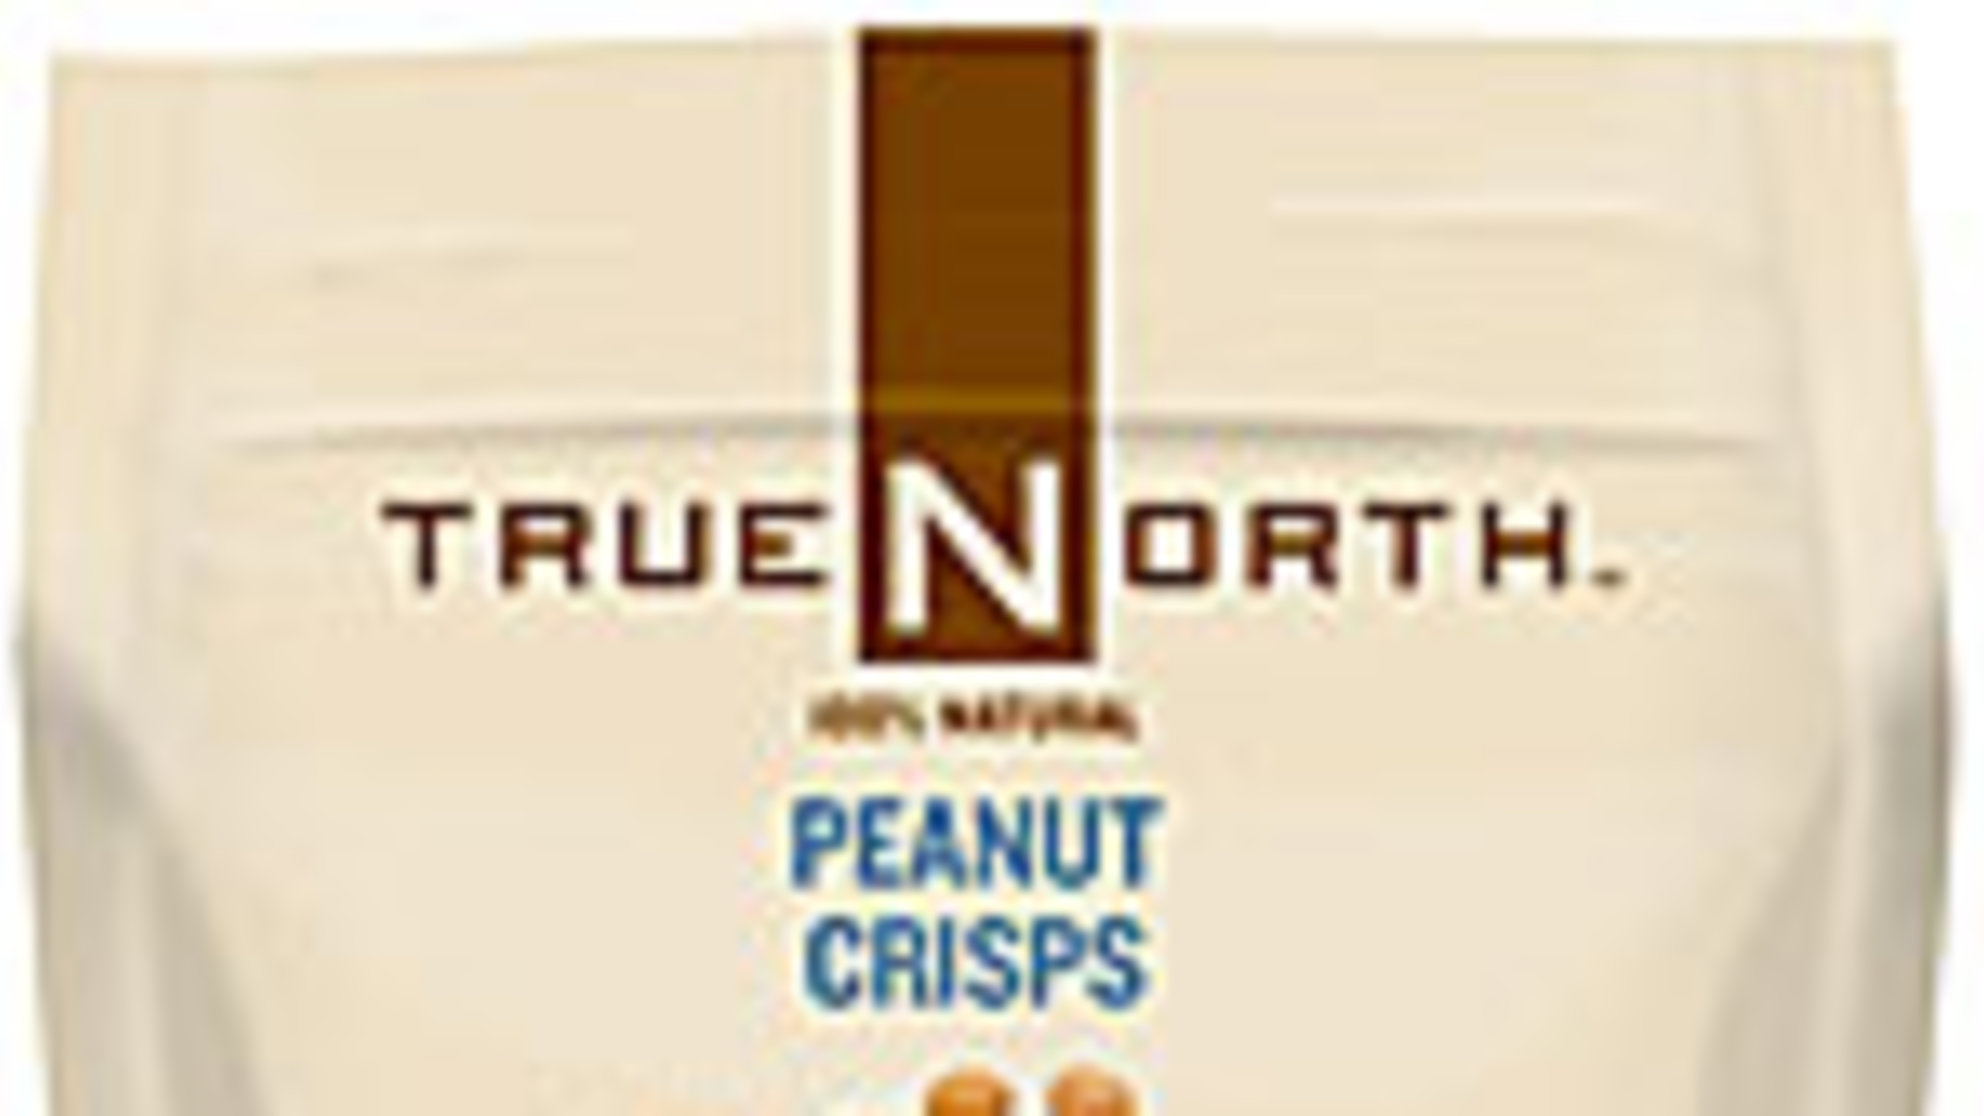 True North Peanut Crisps